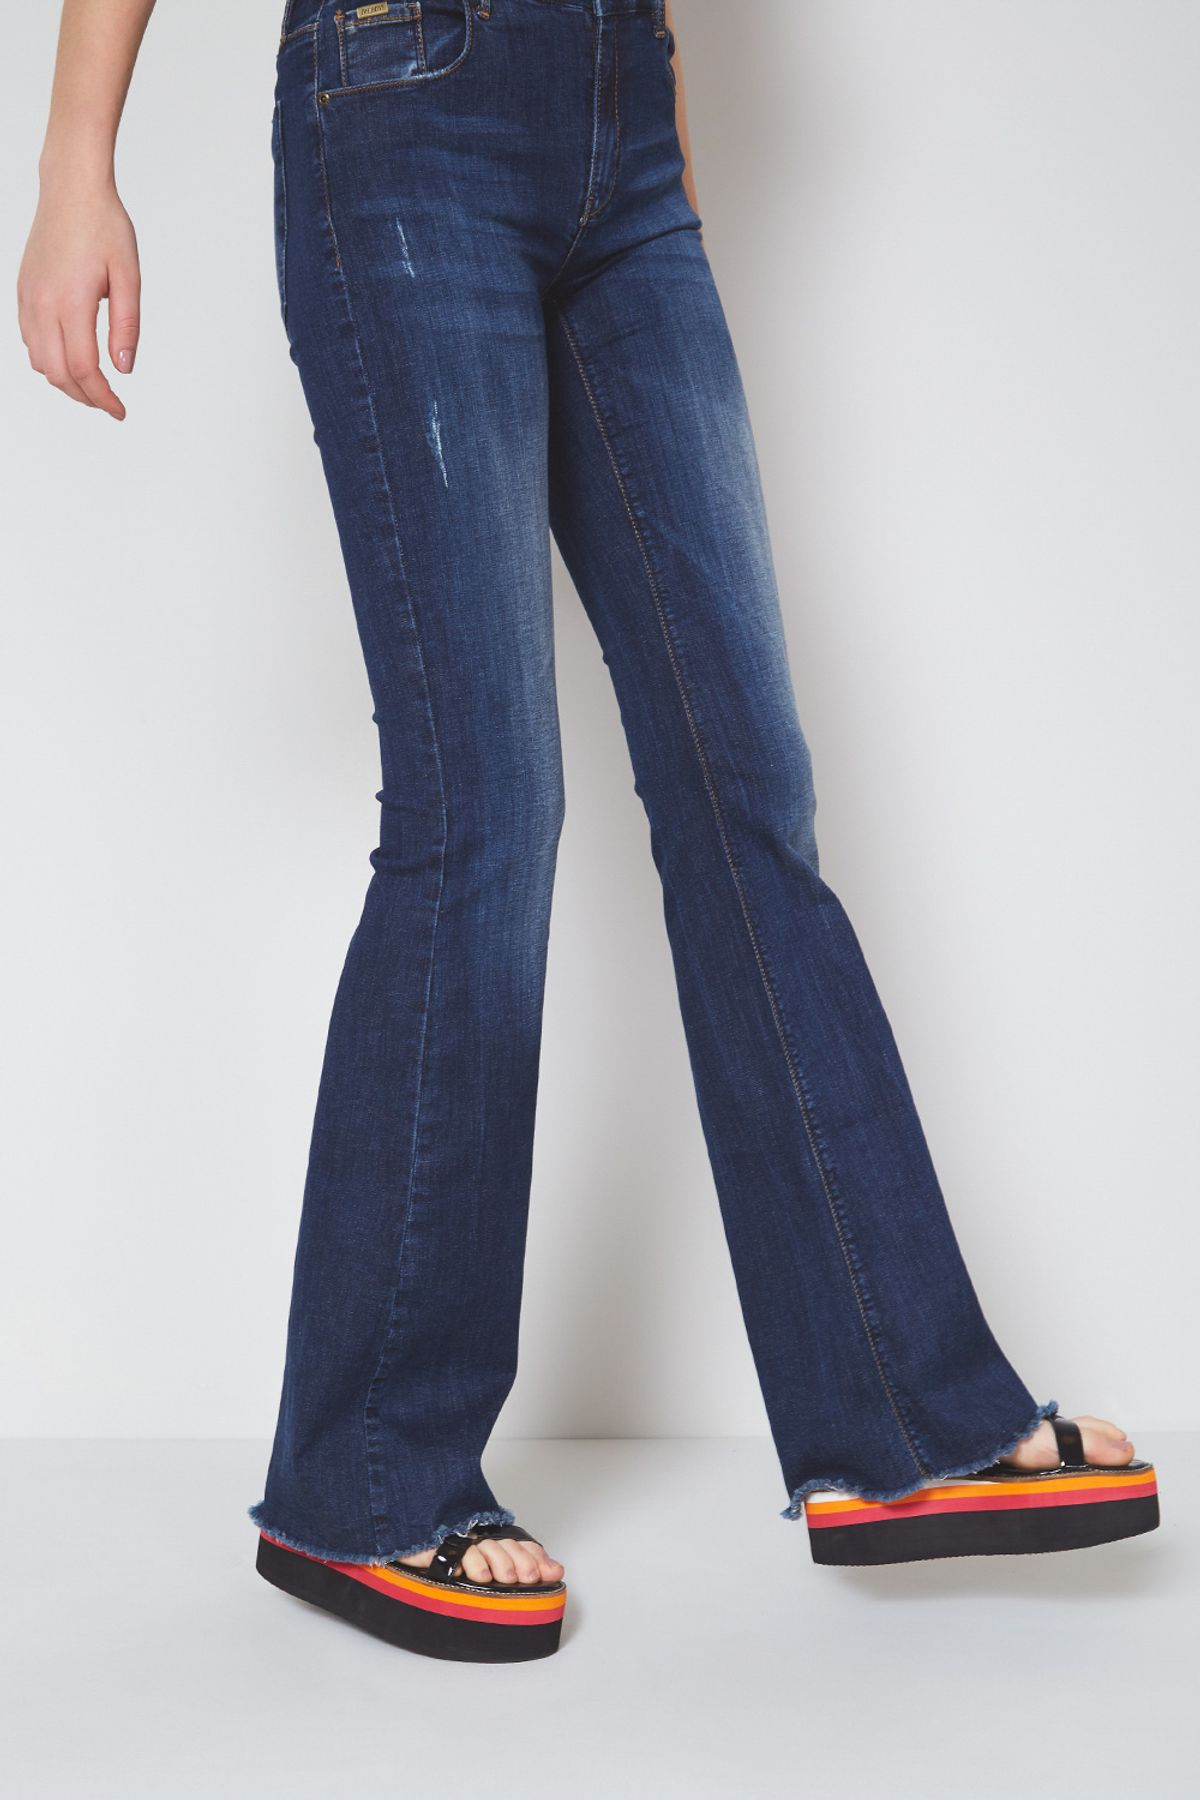 CALCA-JEANS-LISE-USED-LAVAGEM-ESCURA-020210070057-OH-BOY